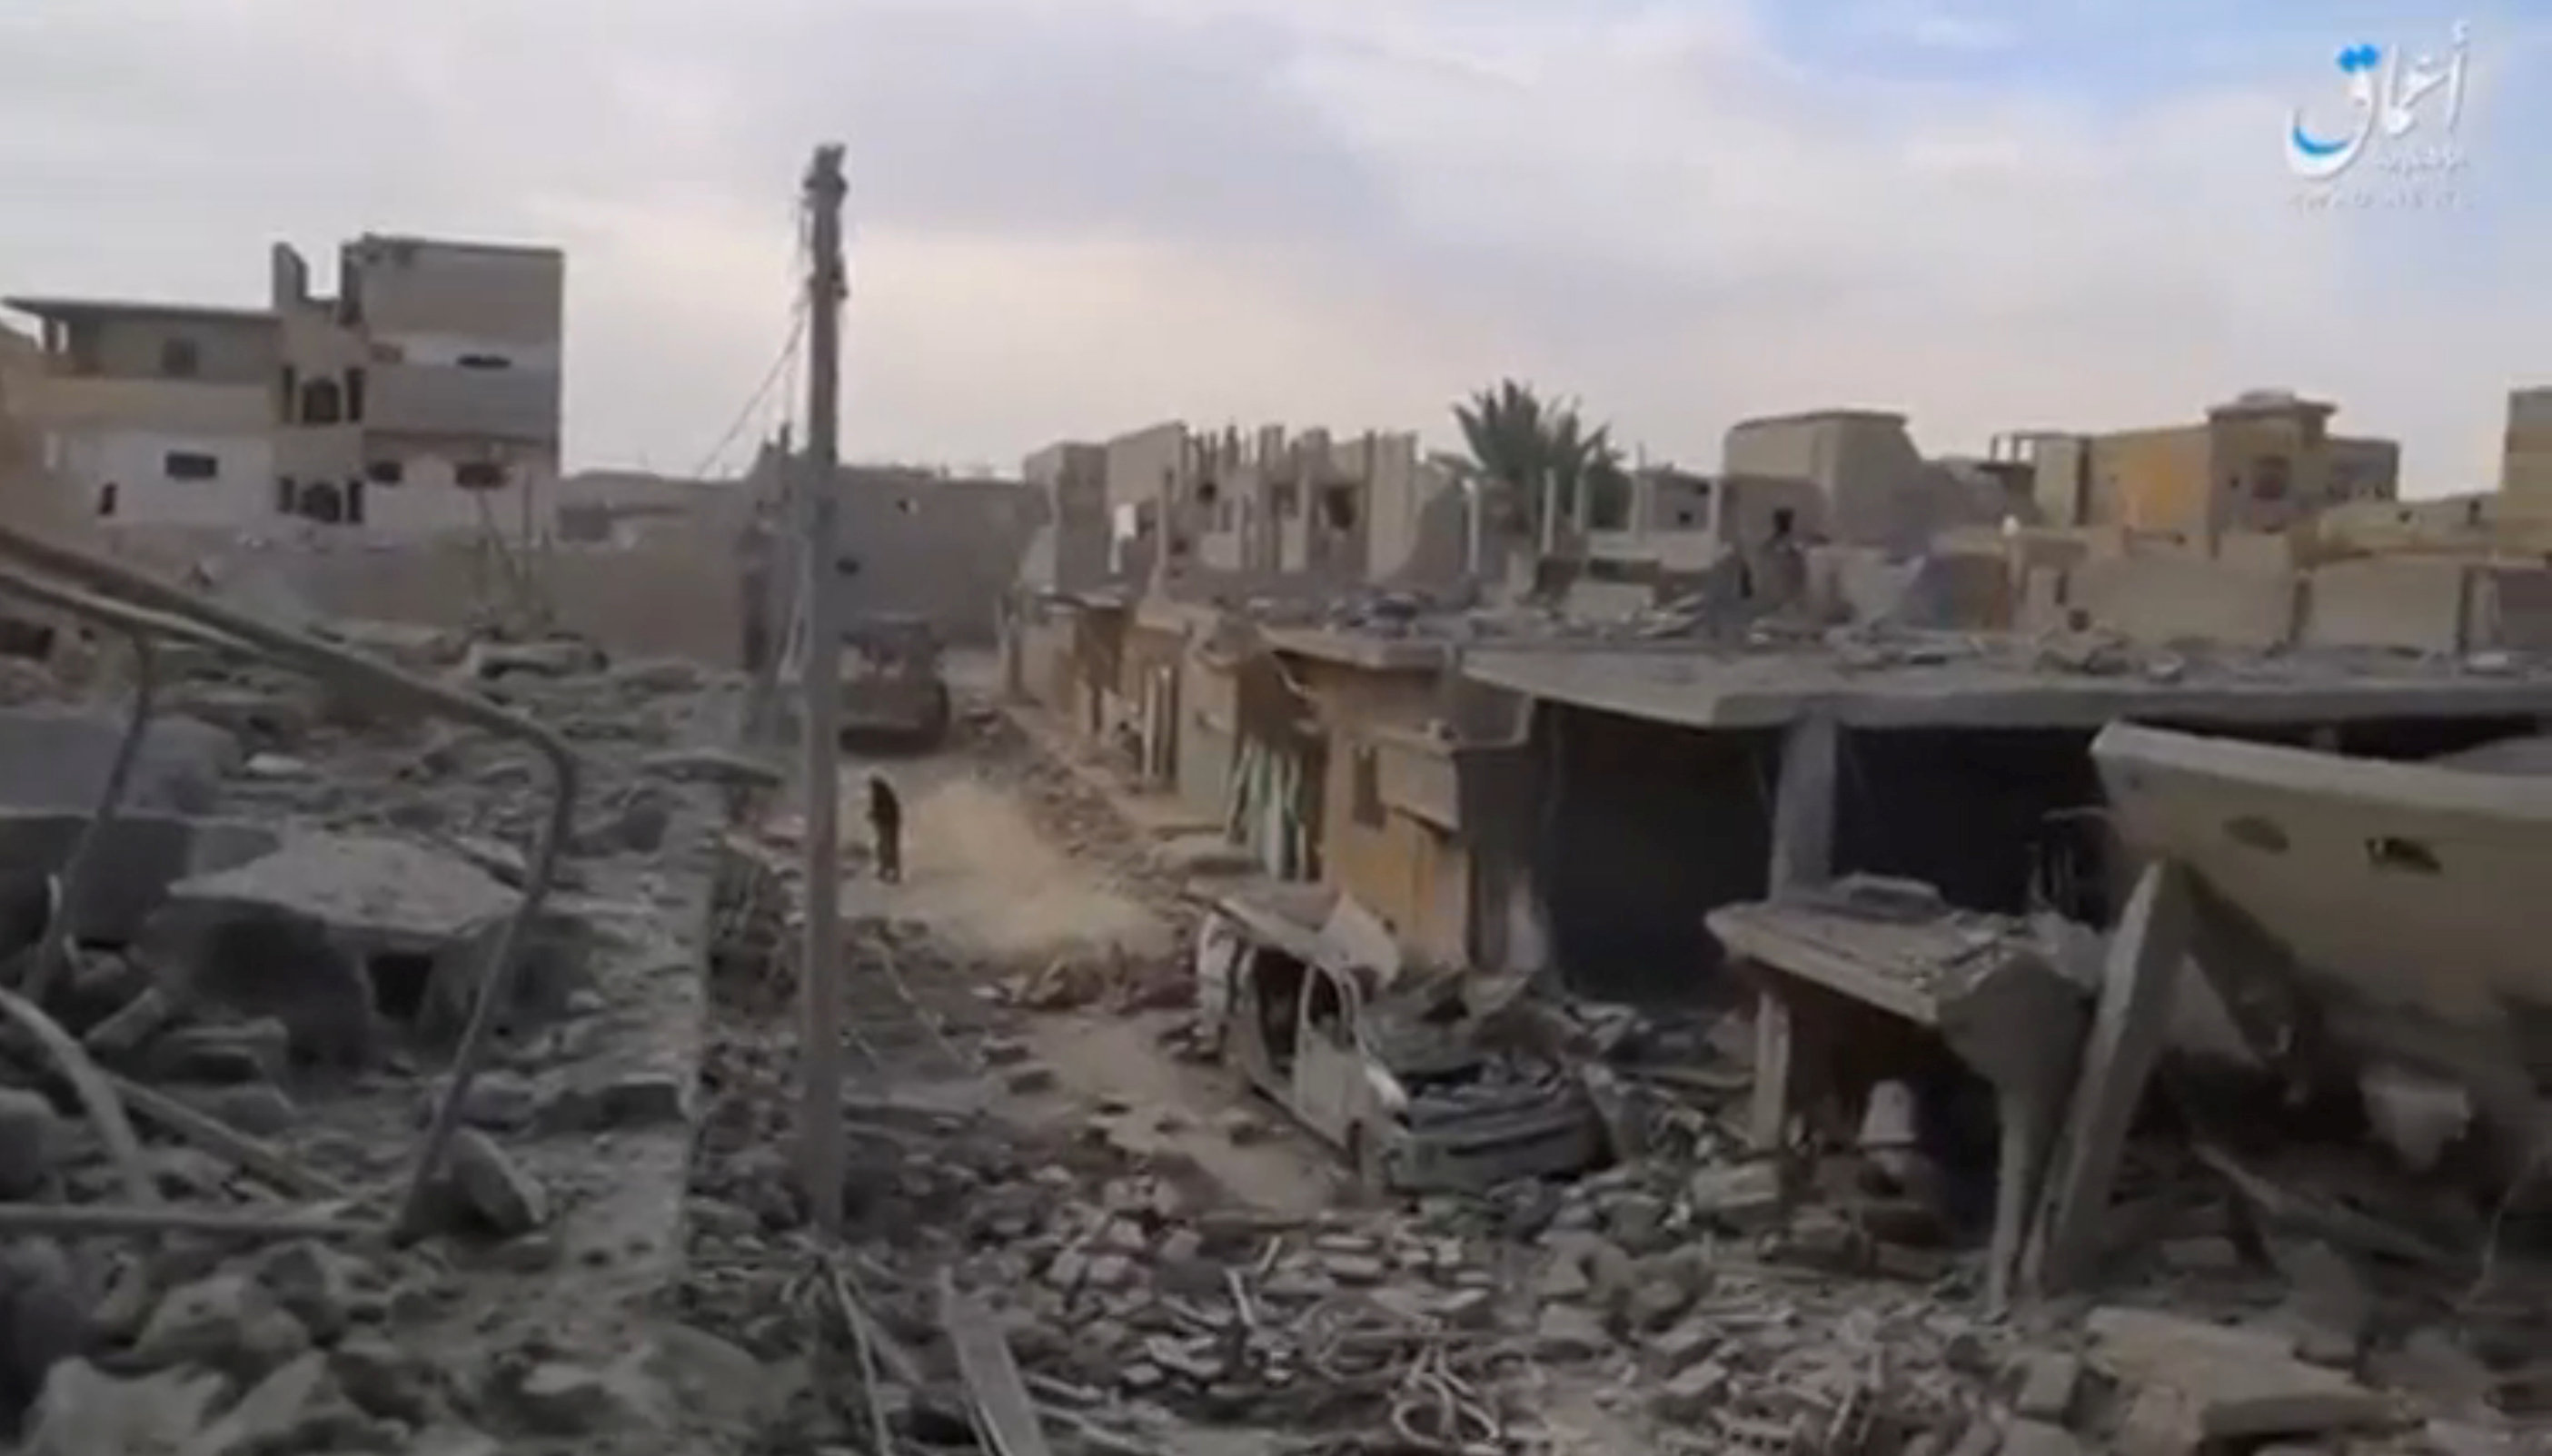 Houses were flattened in the alleged US-led military coalition air strike on the province. Credit: Social media website via Reuters